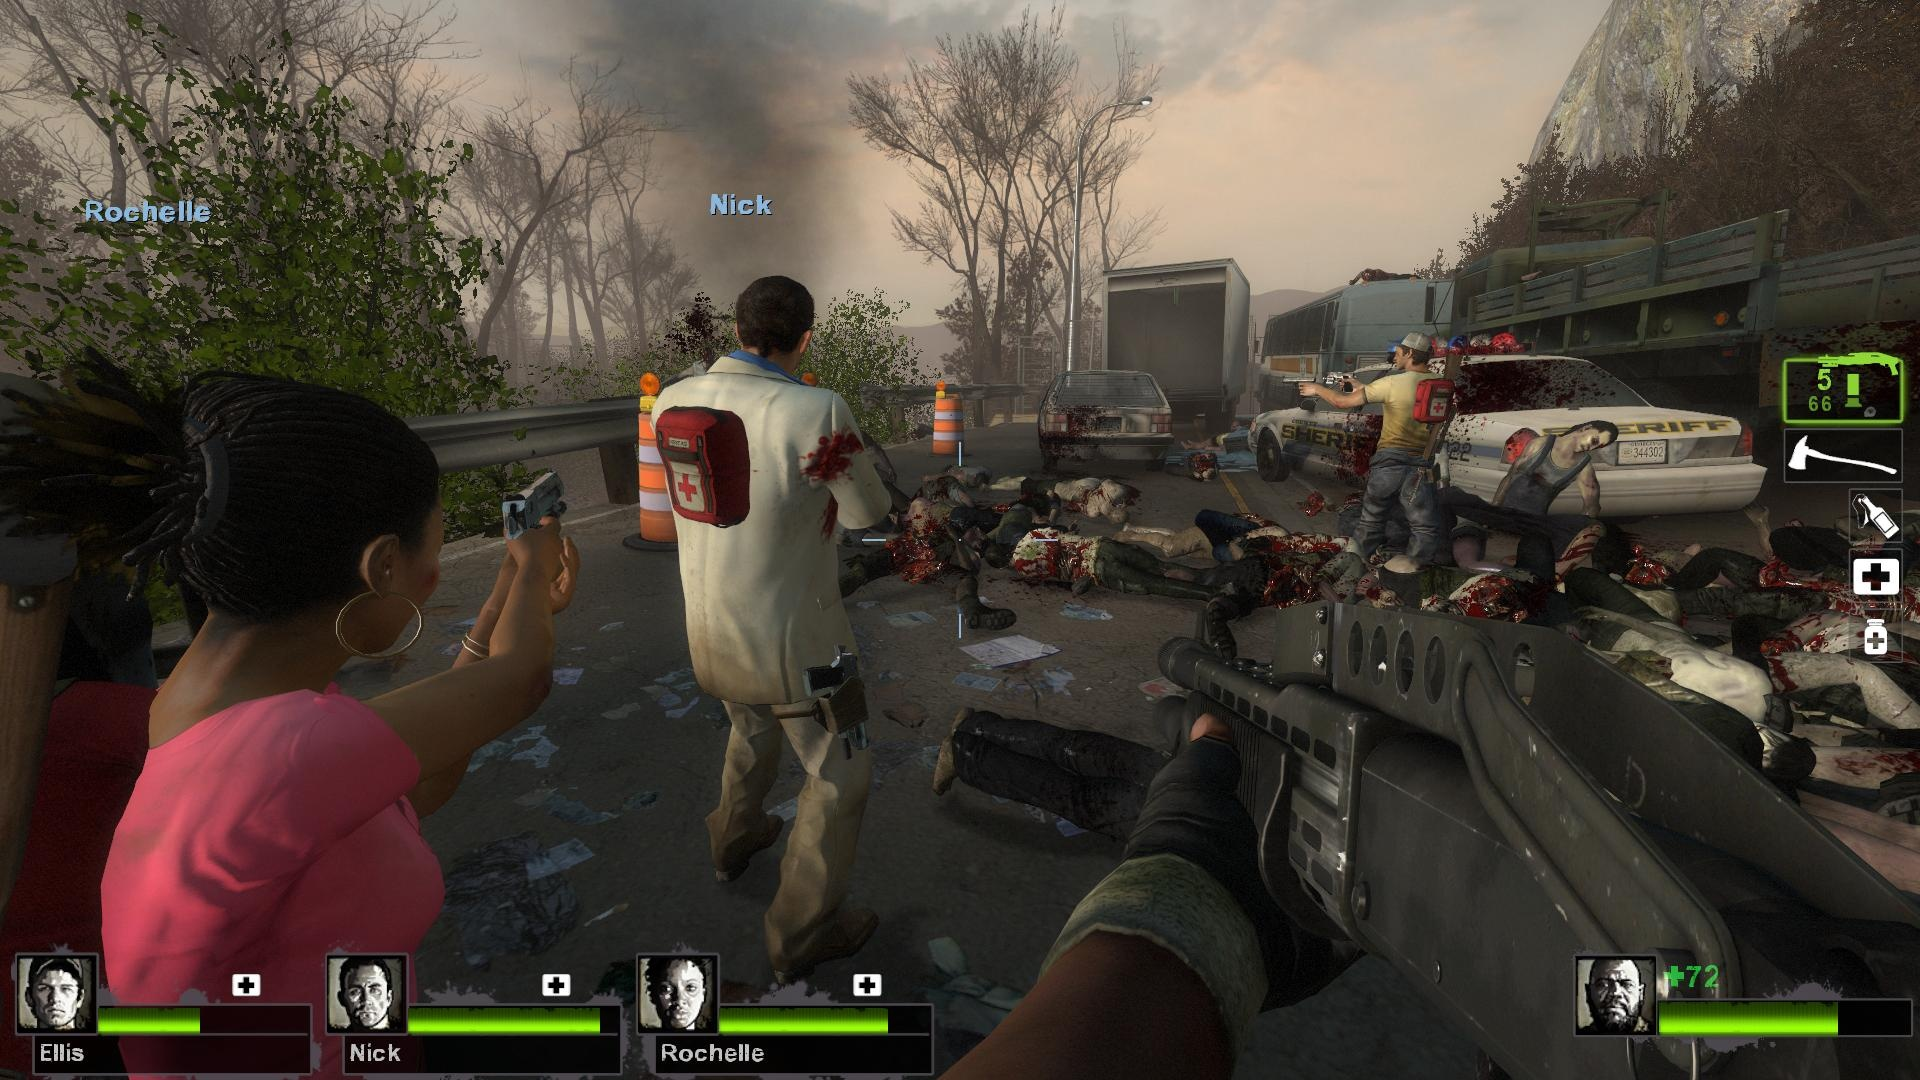 This is an example of the carnage that is Left 4 Dead 2